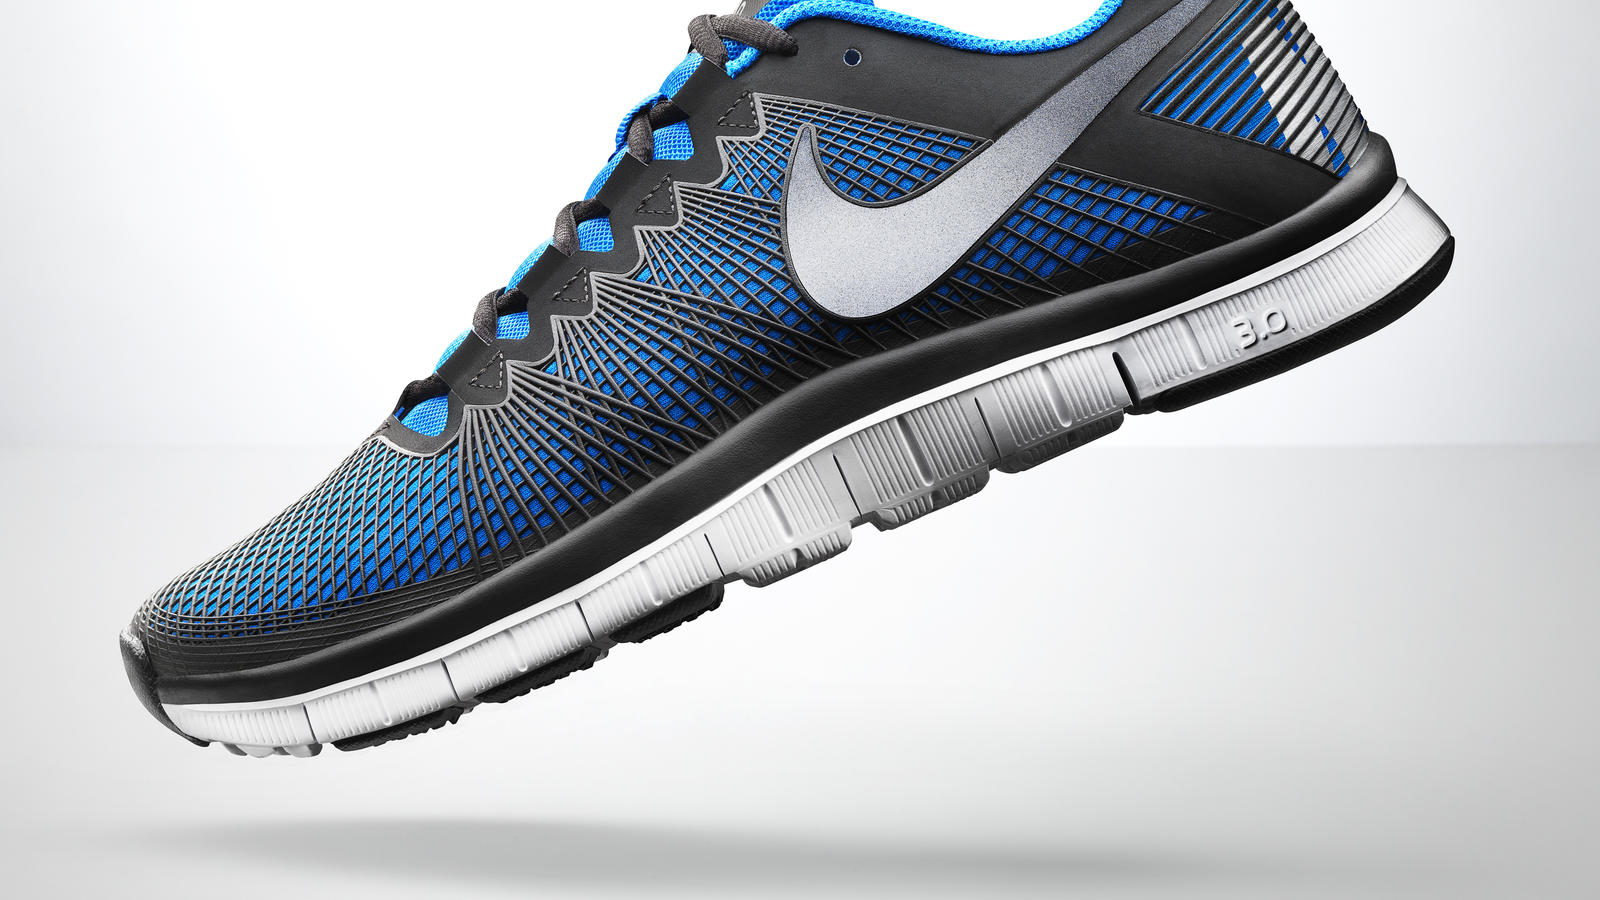 cd328a3ad5be4 Nike Free Trainer 3.0 fuses minimalism with stability - Nike News